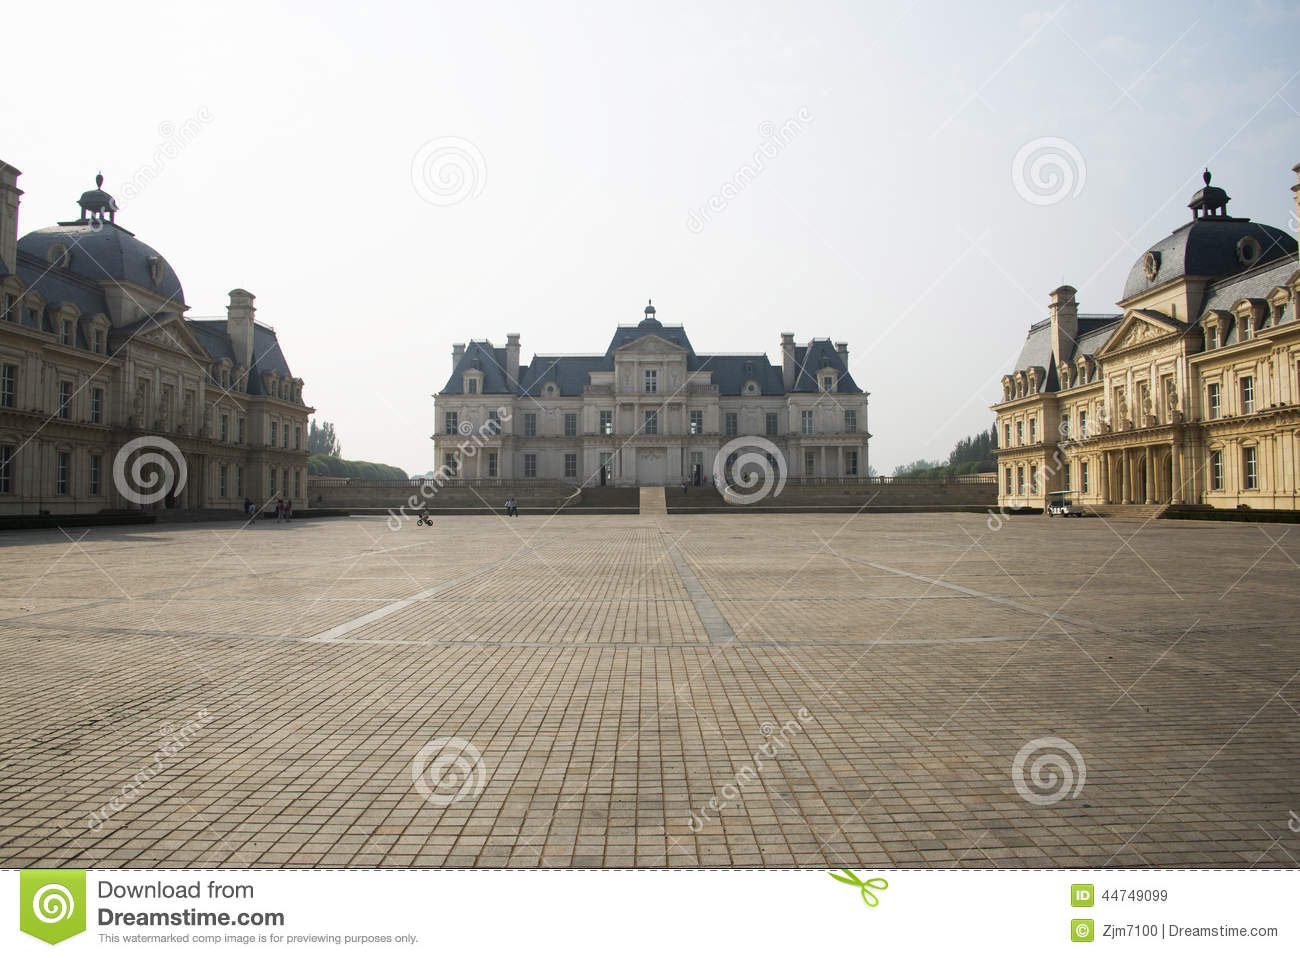 building, the castle editorial stock image - image: 44749099